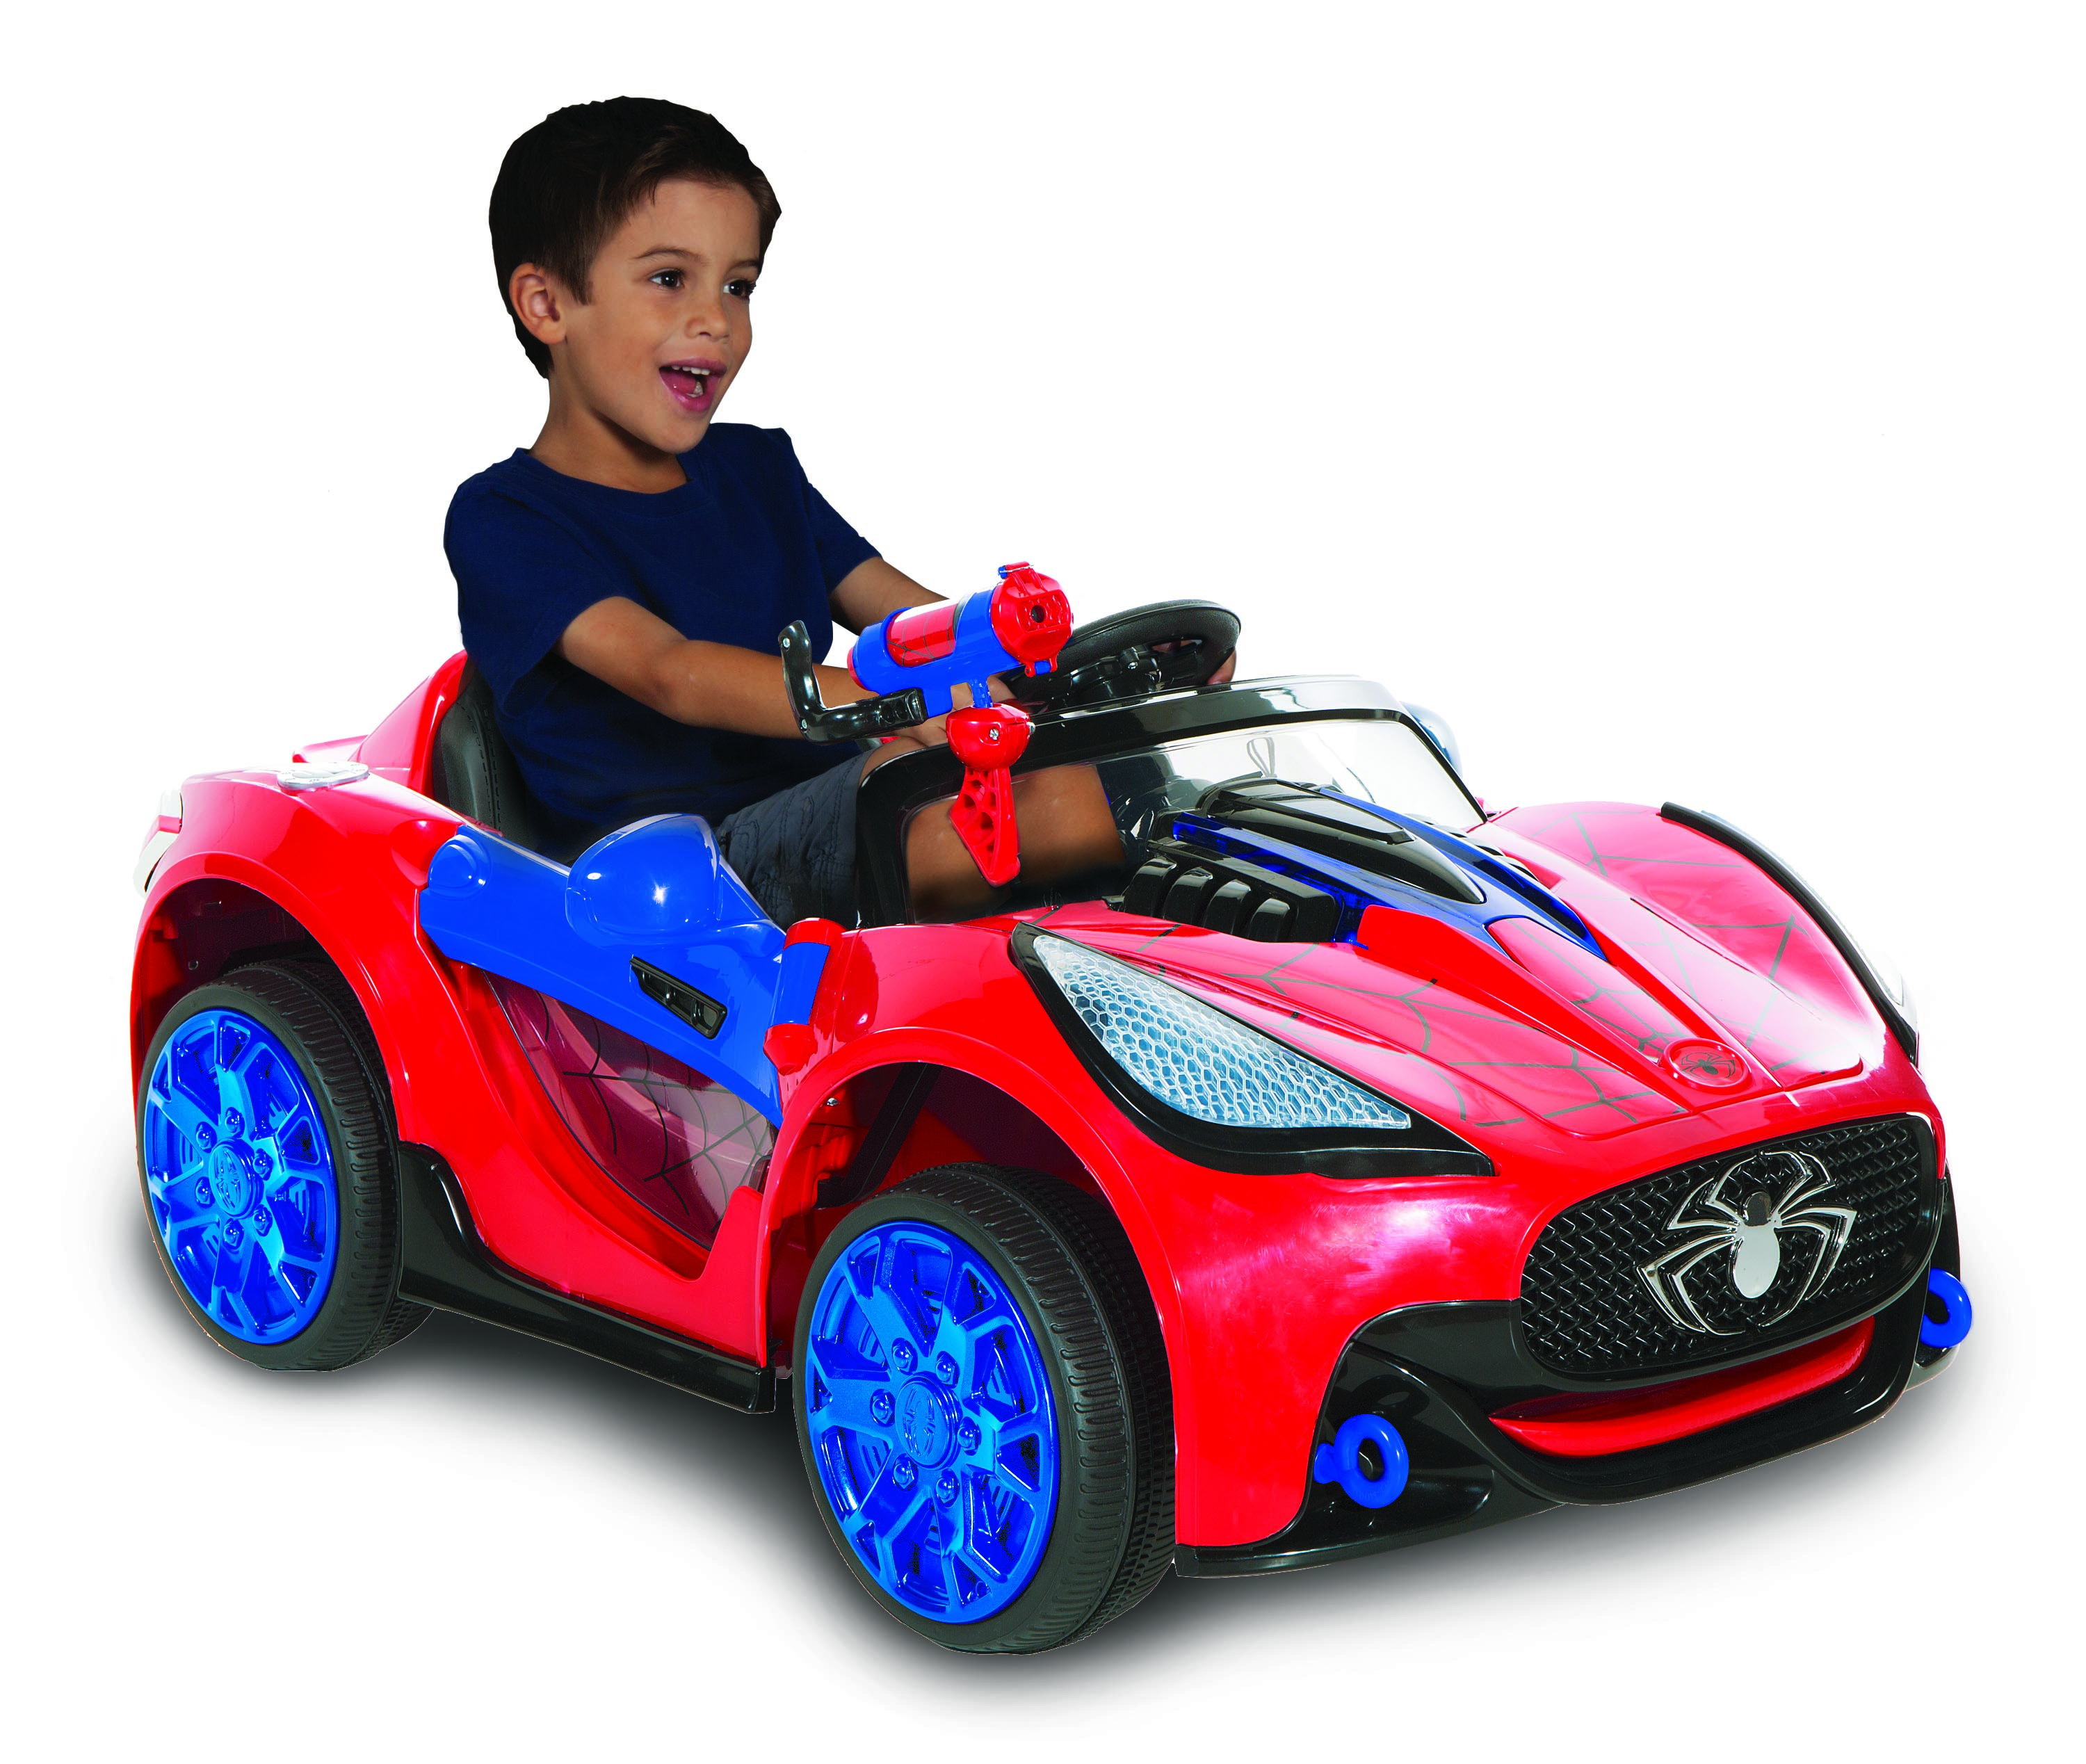 Spiderman-marvel 6 Volt Spider-man Super Car for Kids